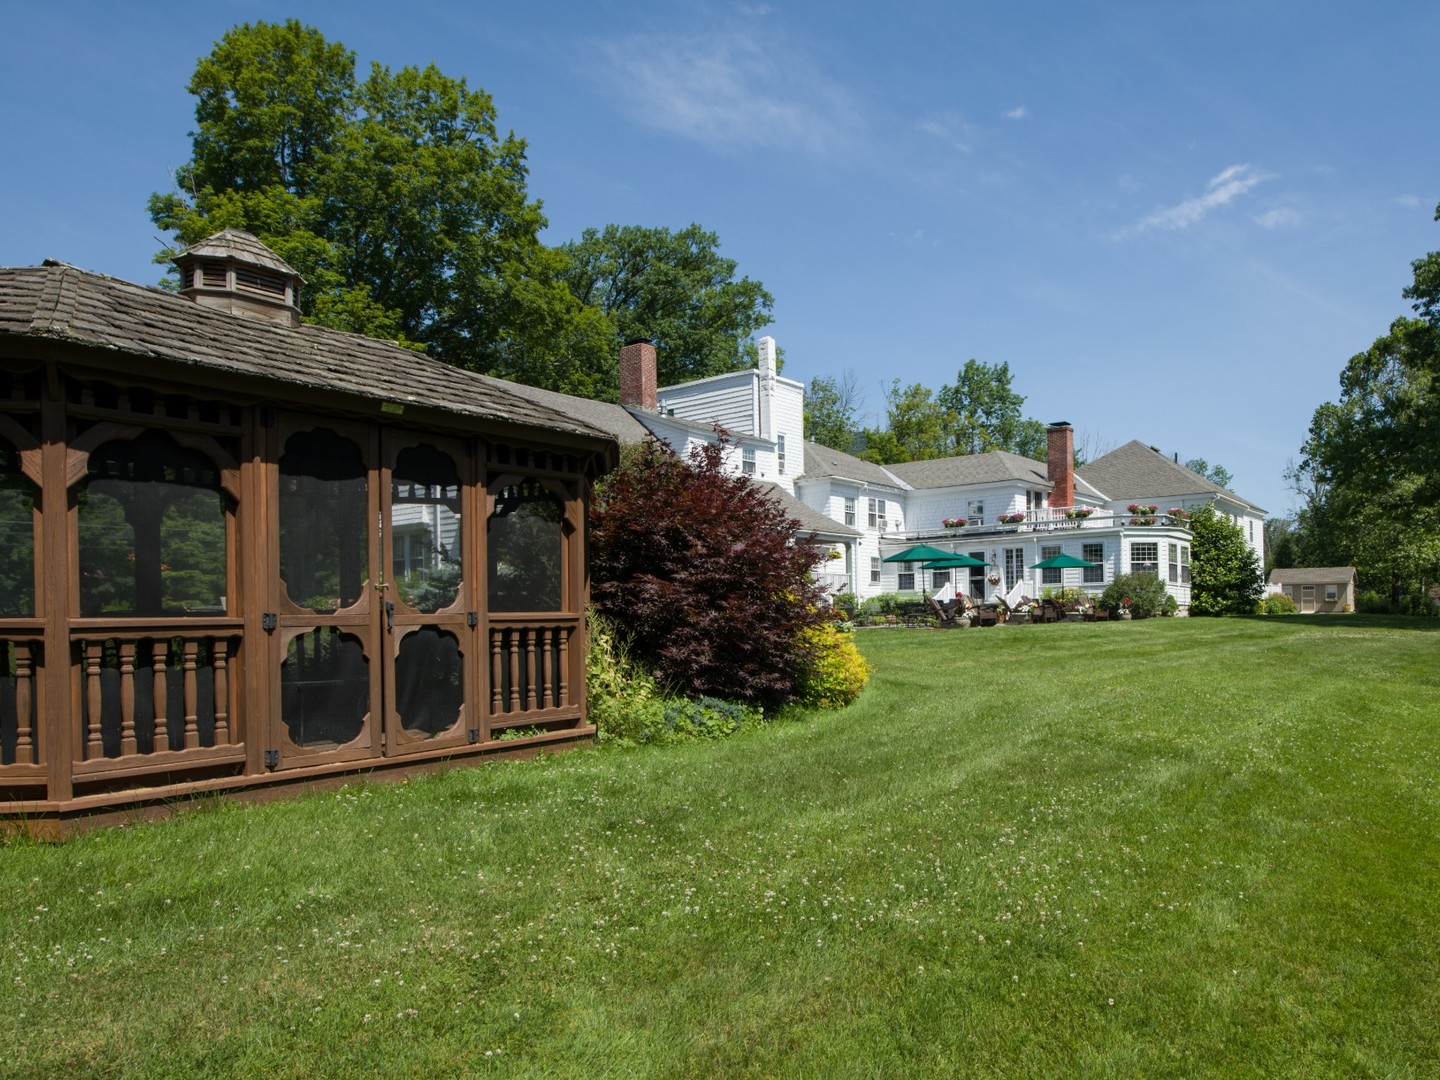 A large lawn in front of a house at The Inn at Ormsby Hill.